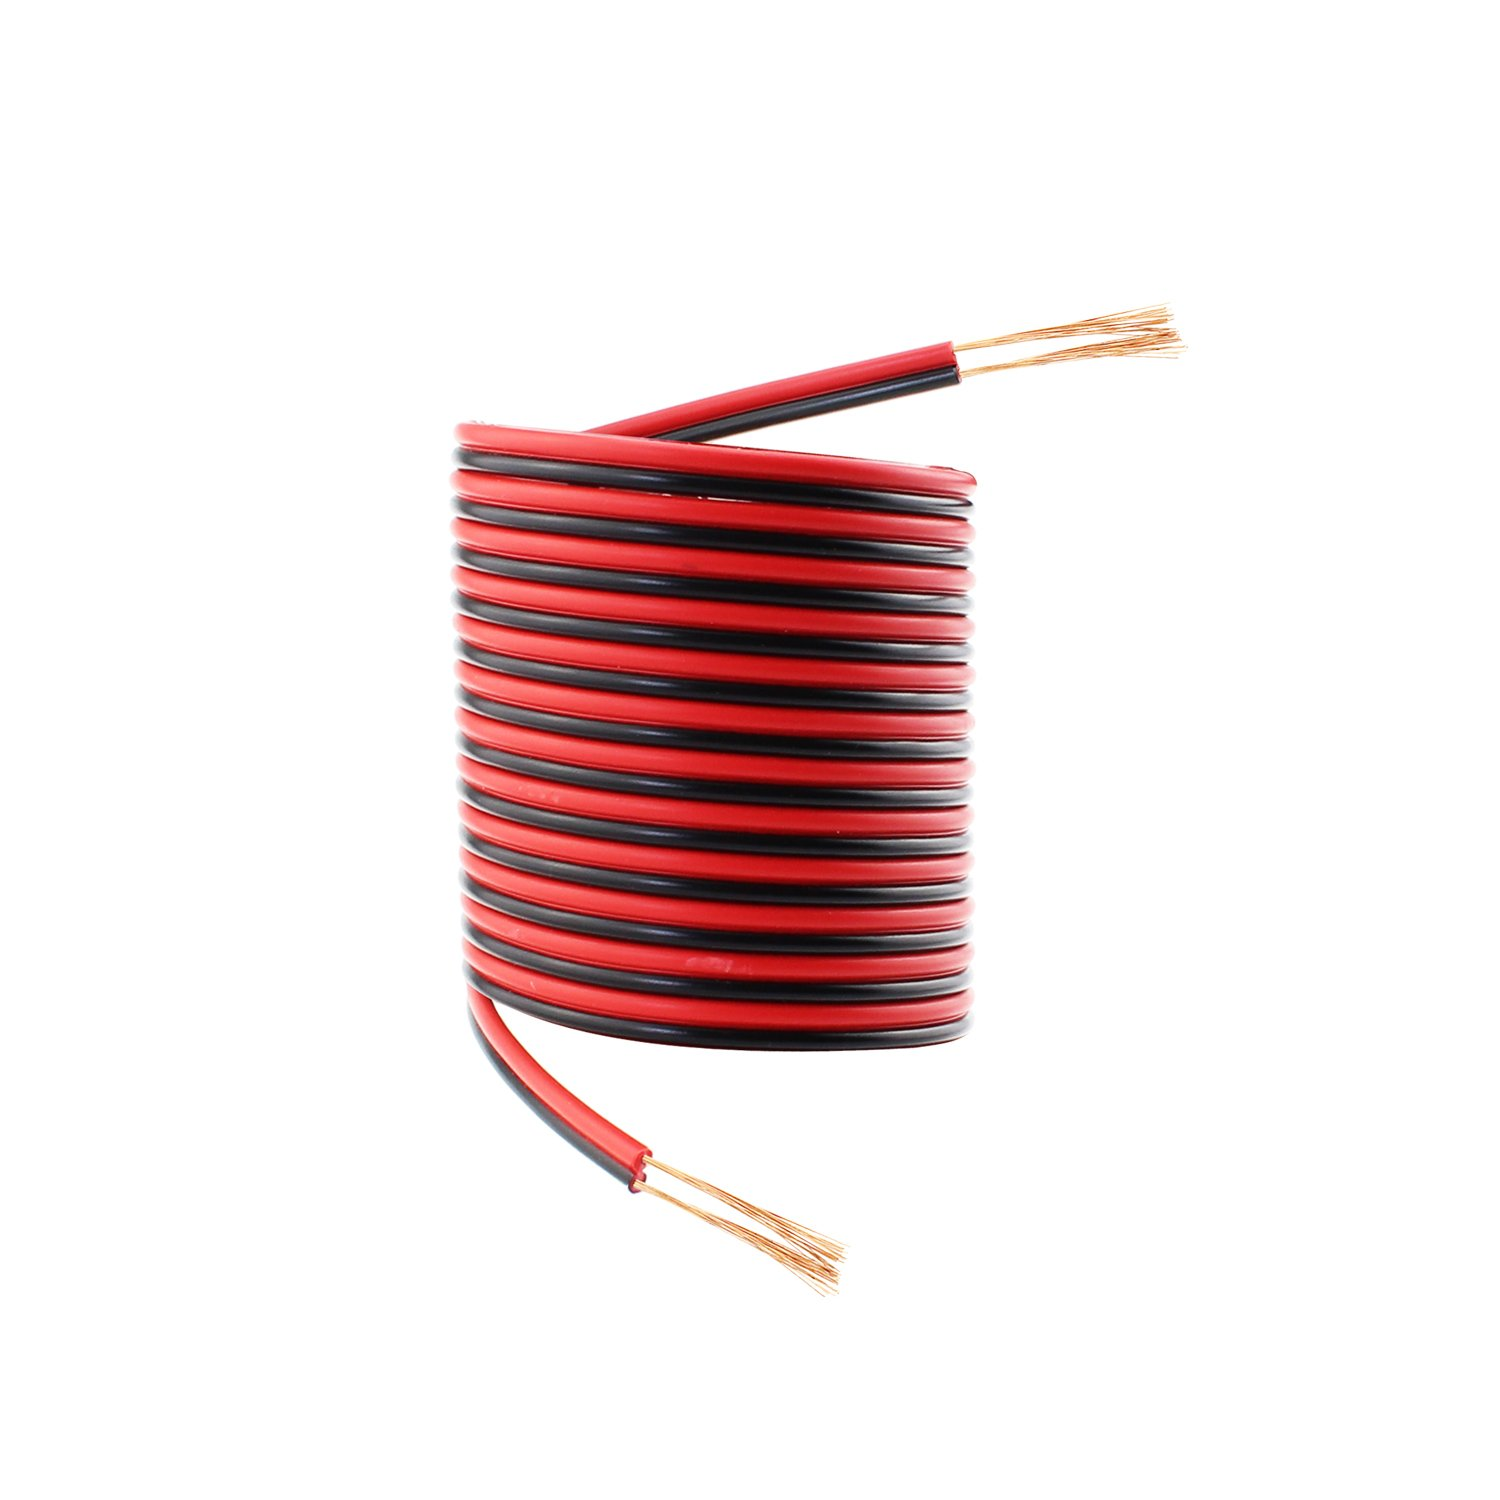 20 AWG Audio Cable 2 Conductor Electric Speaker Cable for Radios and Led Light Applications SIM/&NAT Direct SIM/&NAT 33ft Red Black Hookup Wire